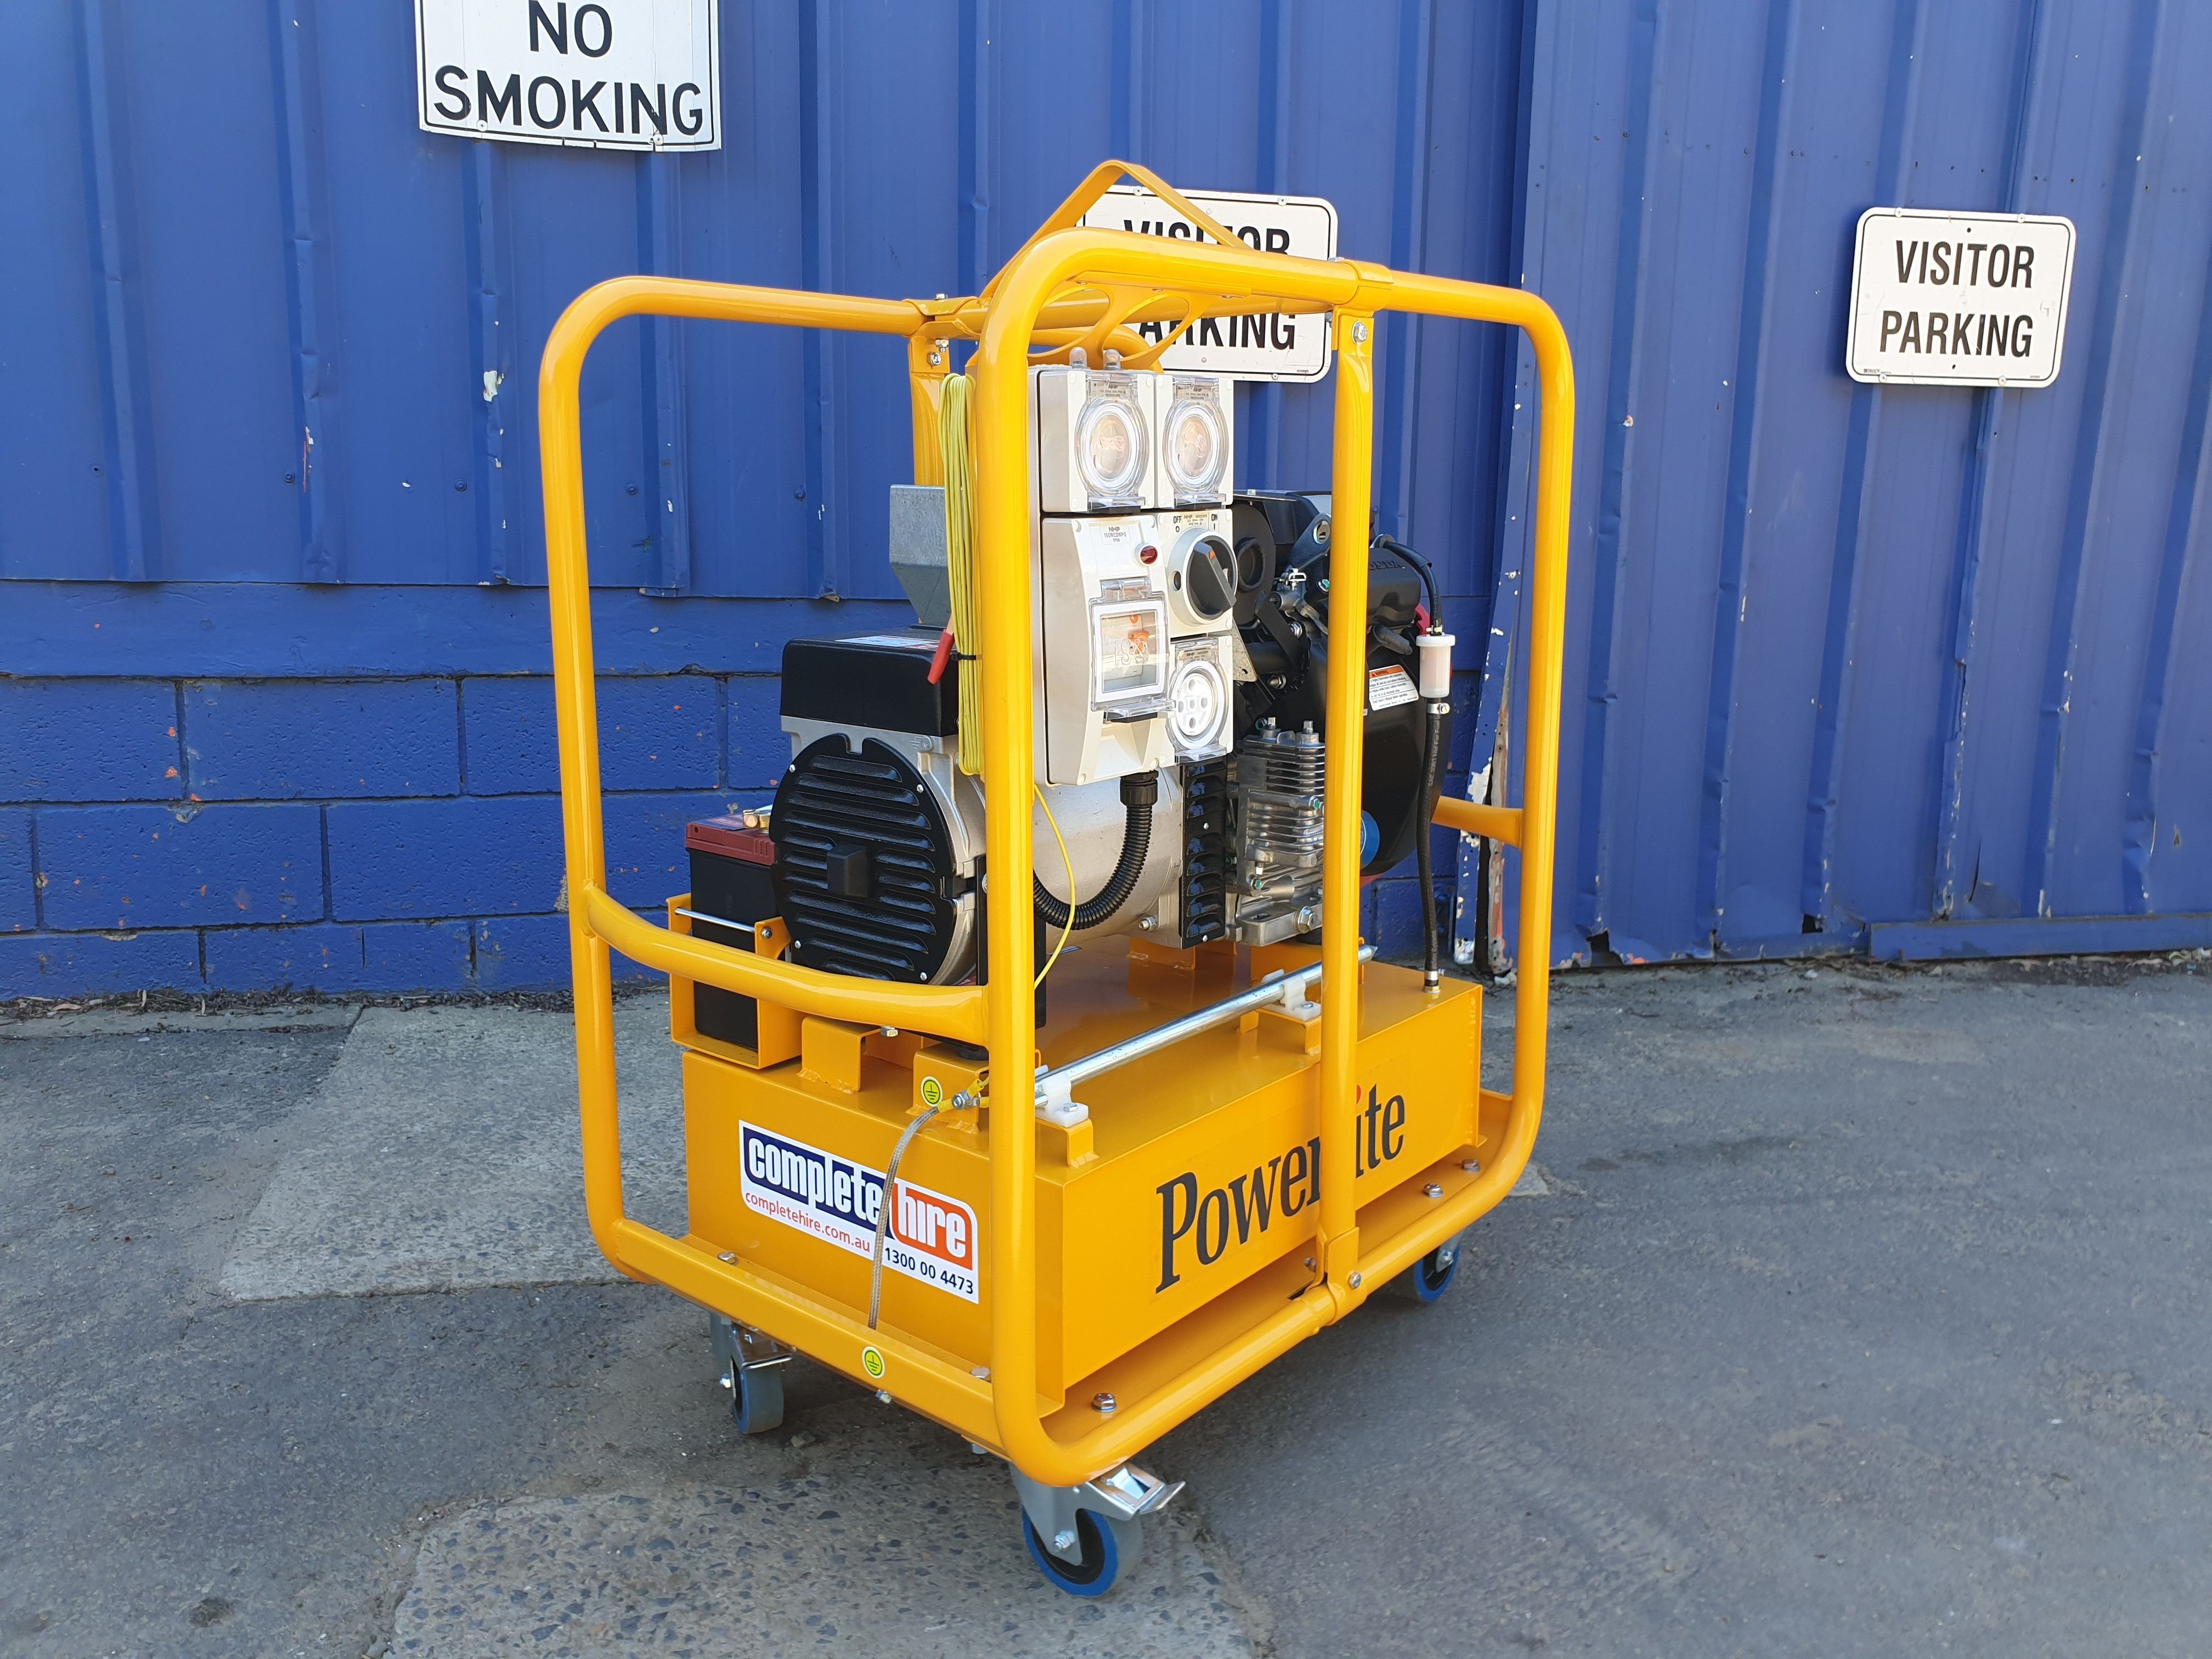 GENERATOR 15.0 KVA PETROL for hire in Sydney from Complete Hire